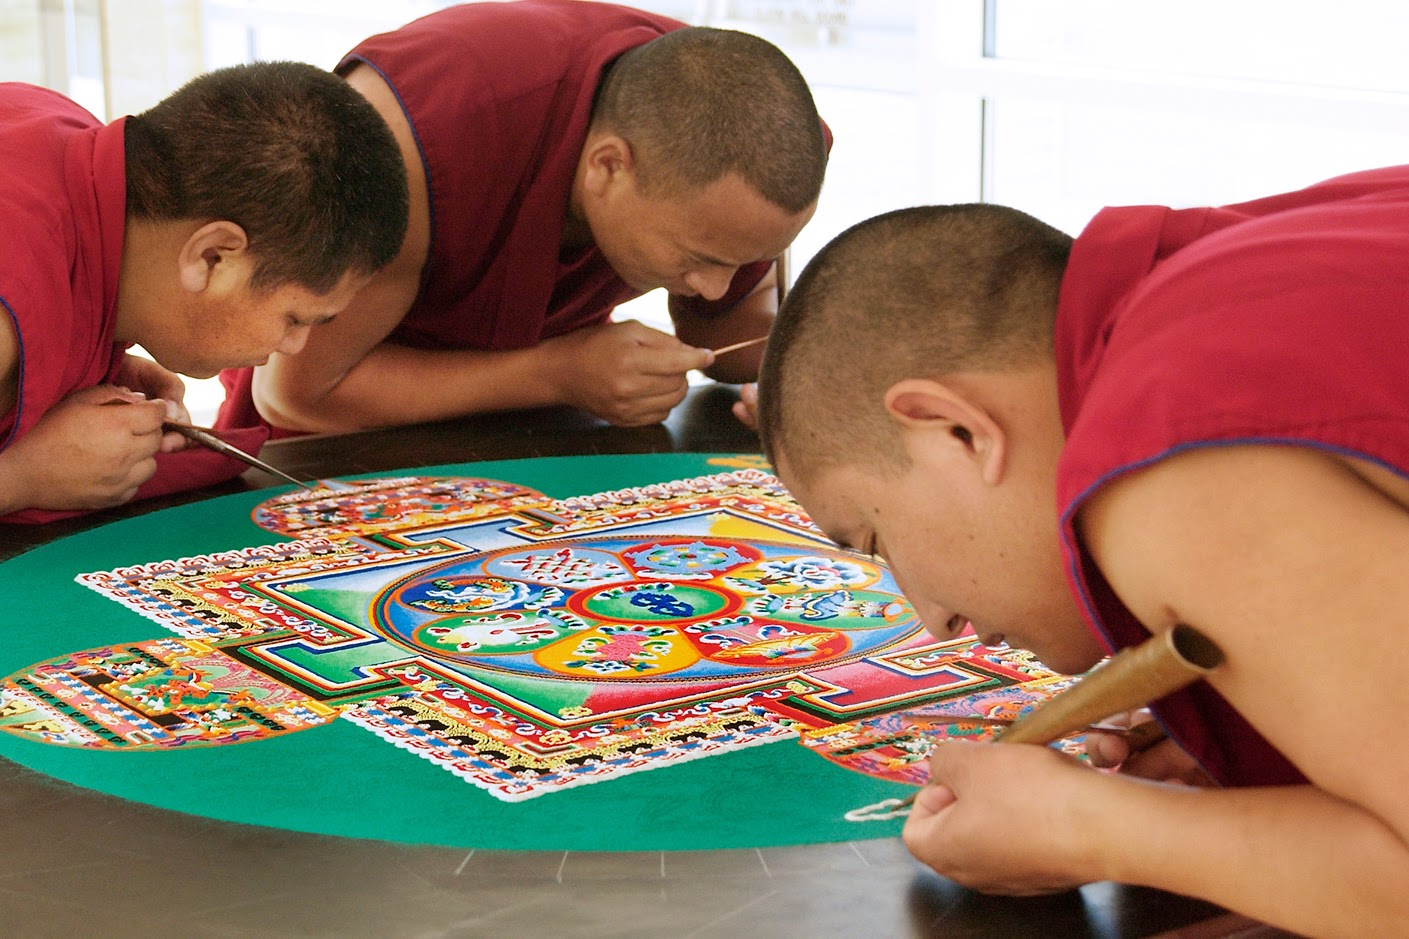 Tibetan monks creating impermanent art